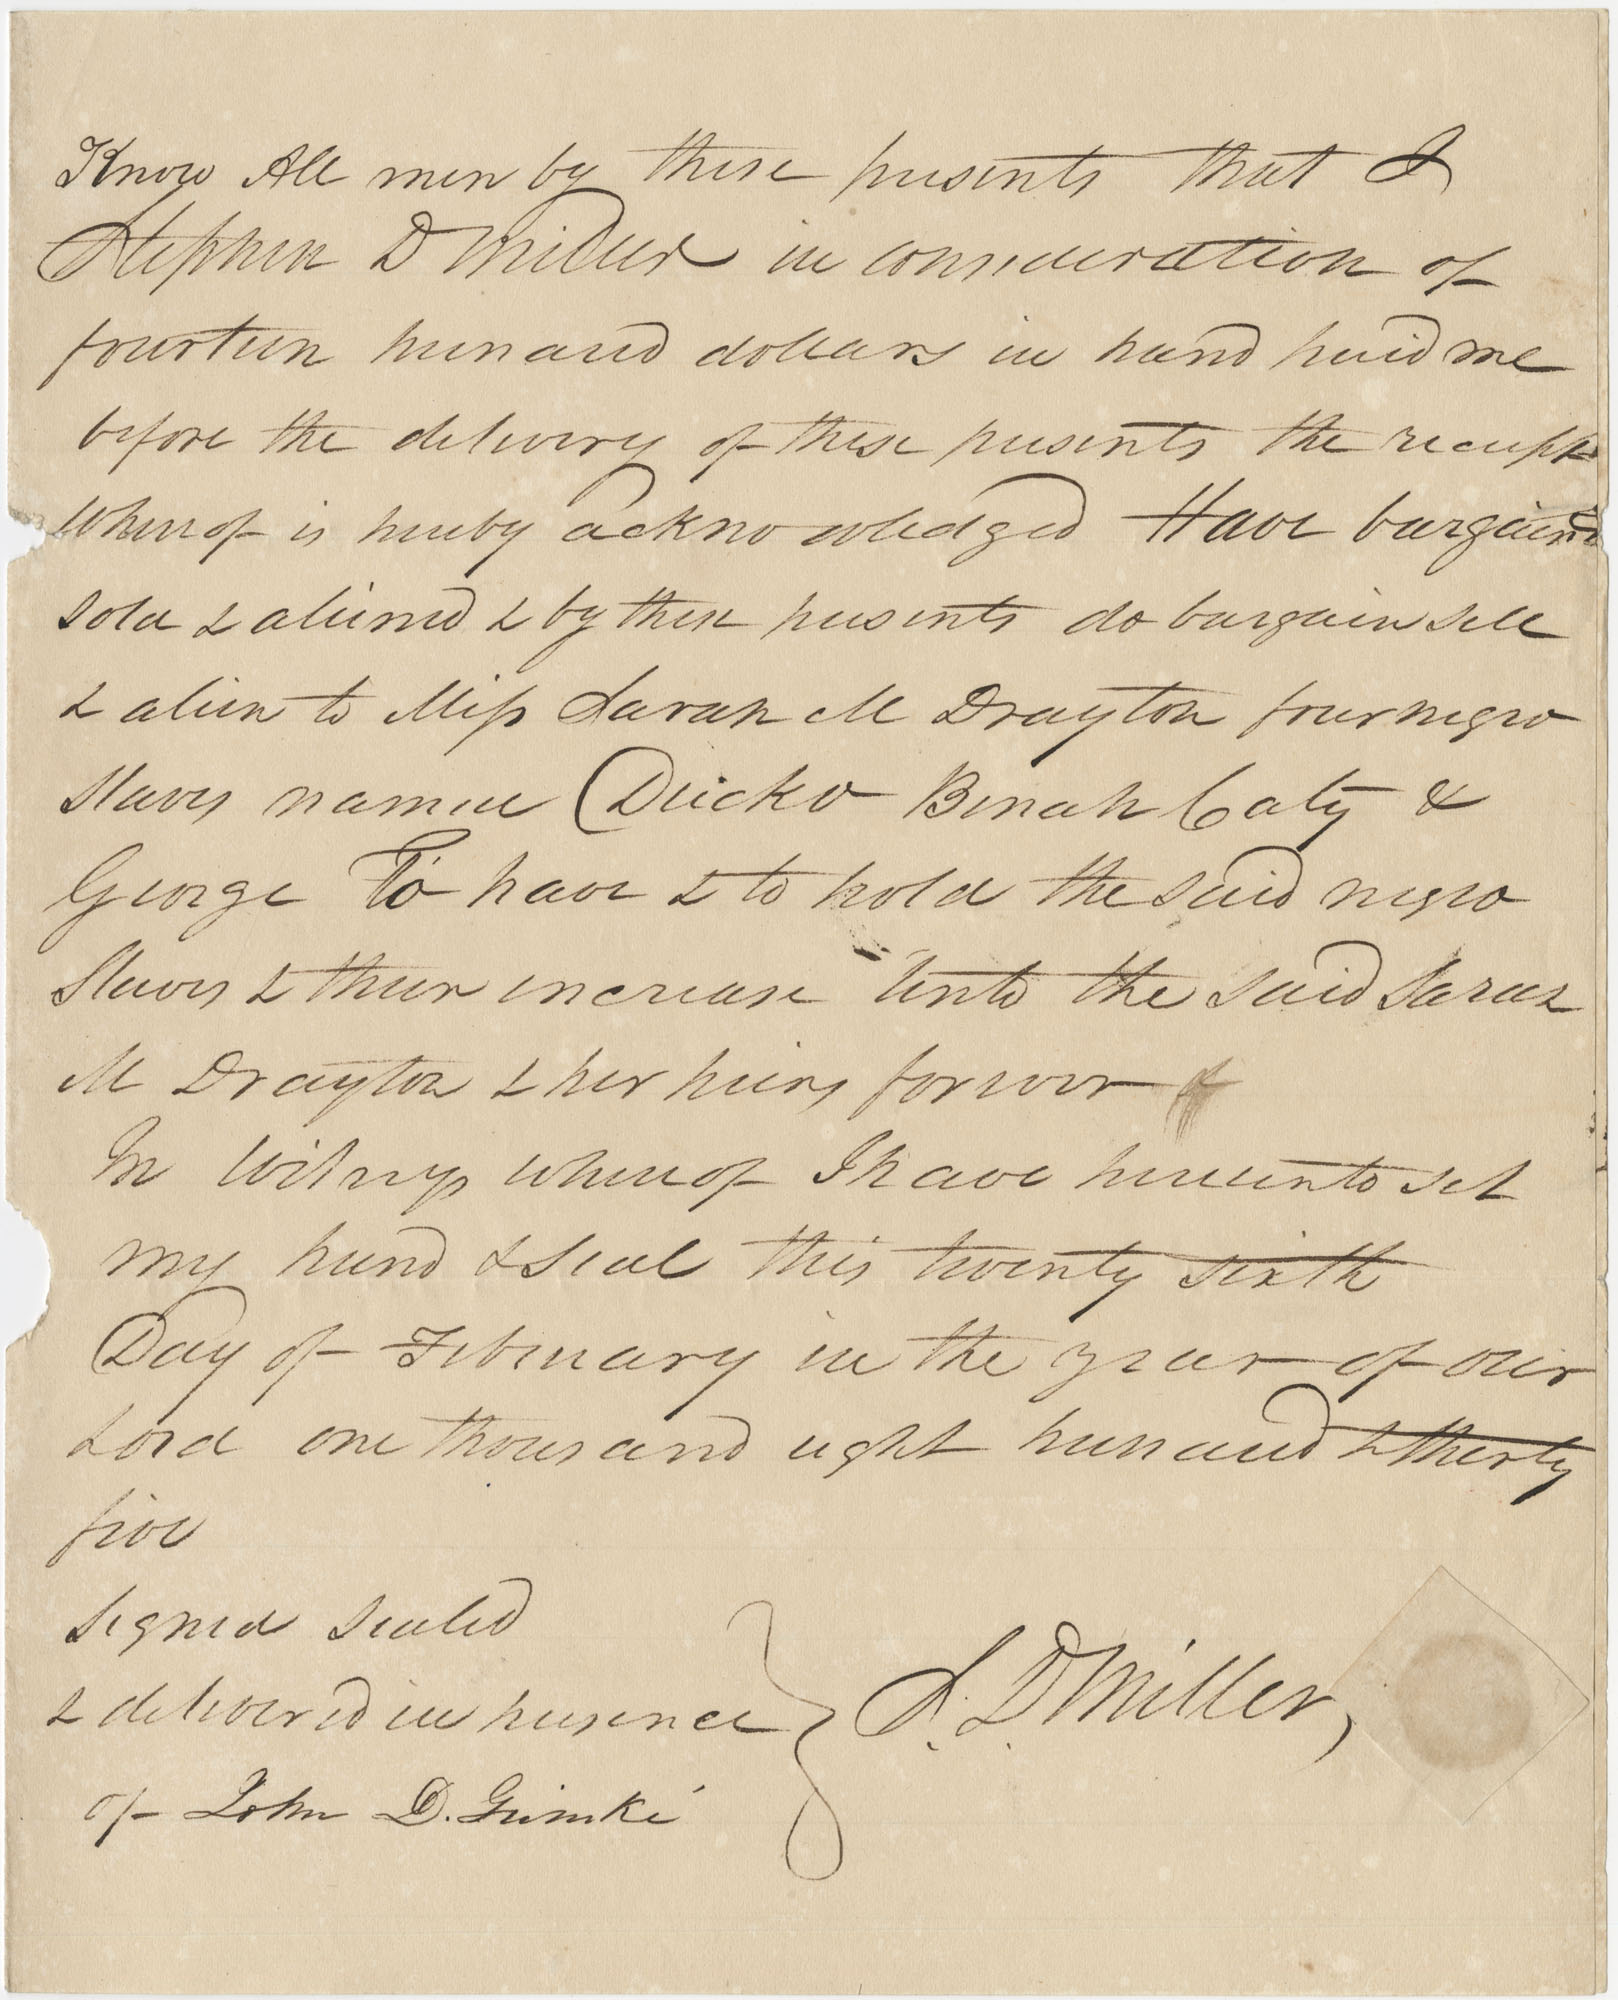 Bill of Sale for four slaves to Sarah M Drayton, February 26, 1825